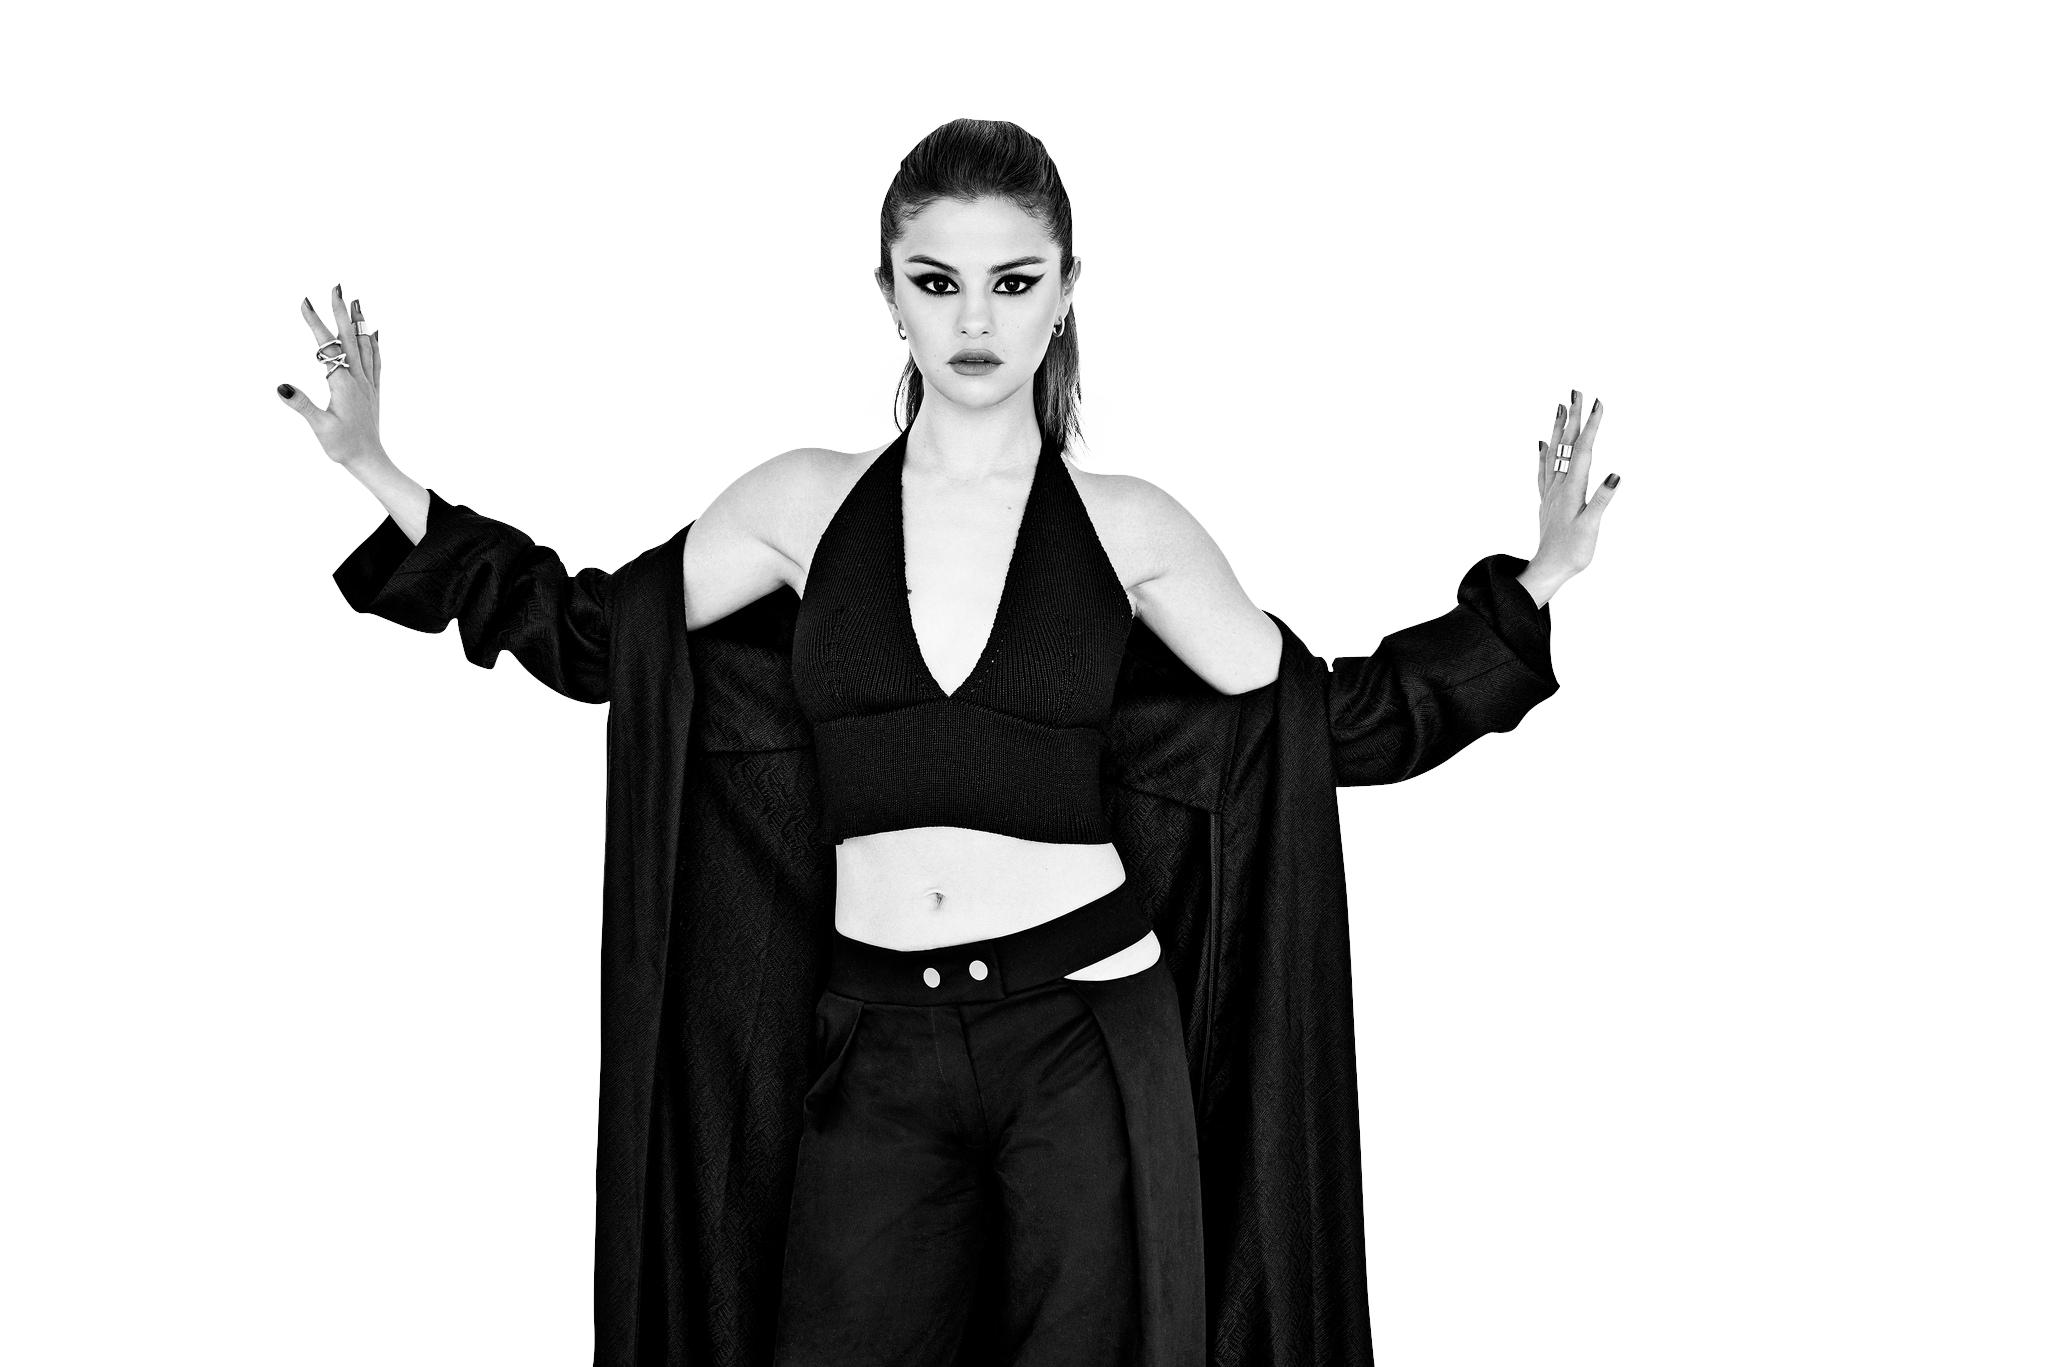 Selena Gomez Black and White PNG Image